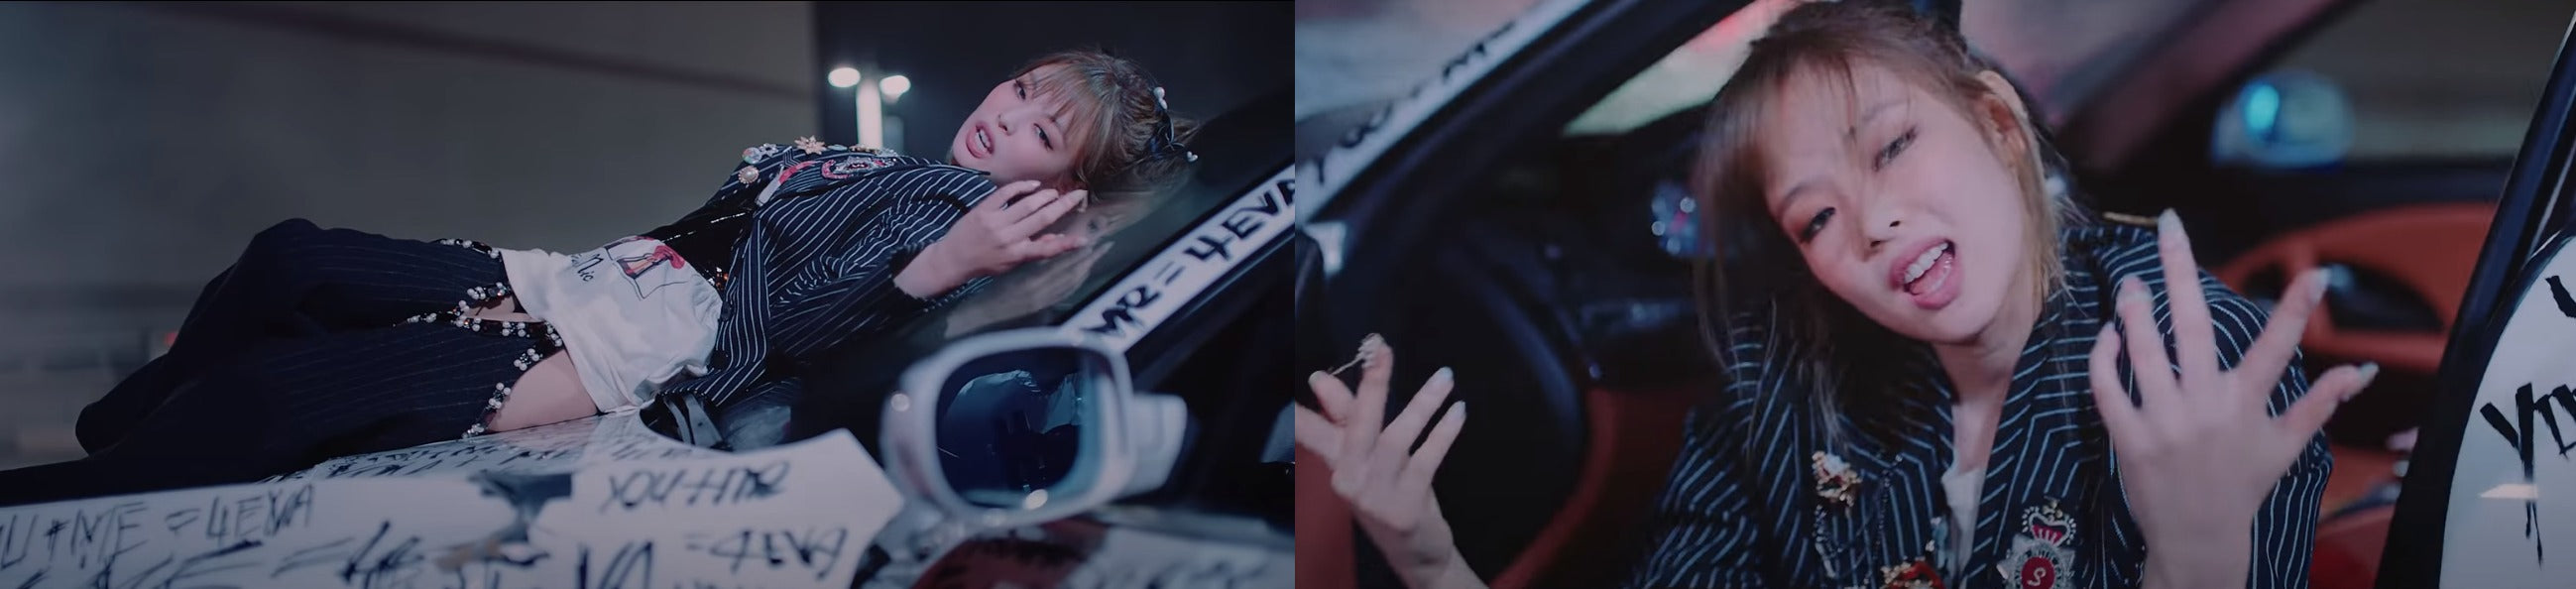 """ic: Jennie in a R13 T-shirt. Featured in Blackpink's """"Lovesick Girls"""" Music Video."""